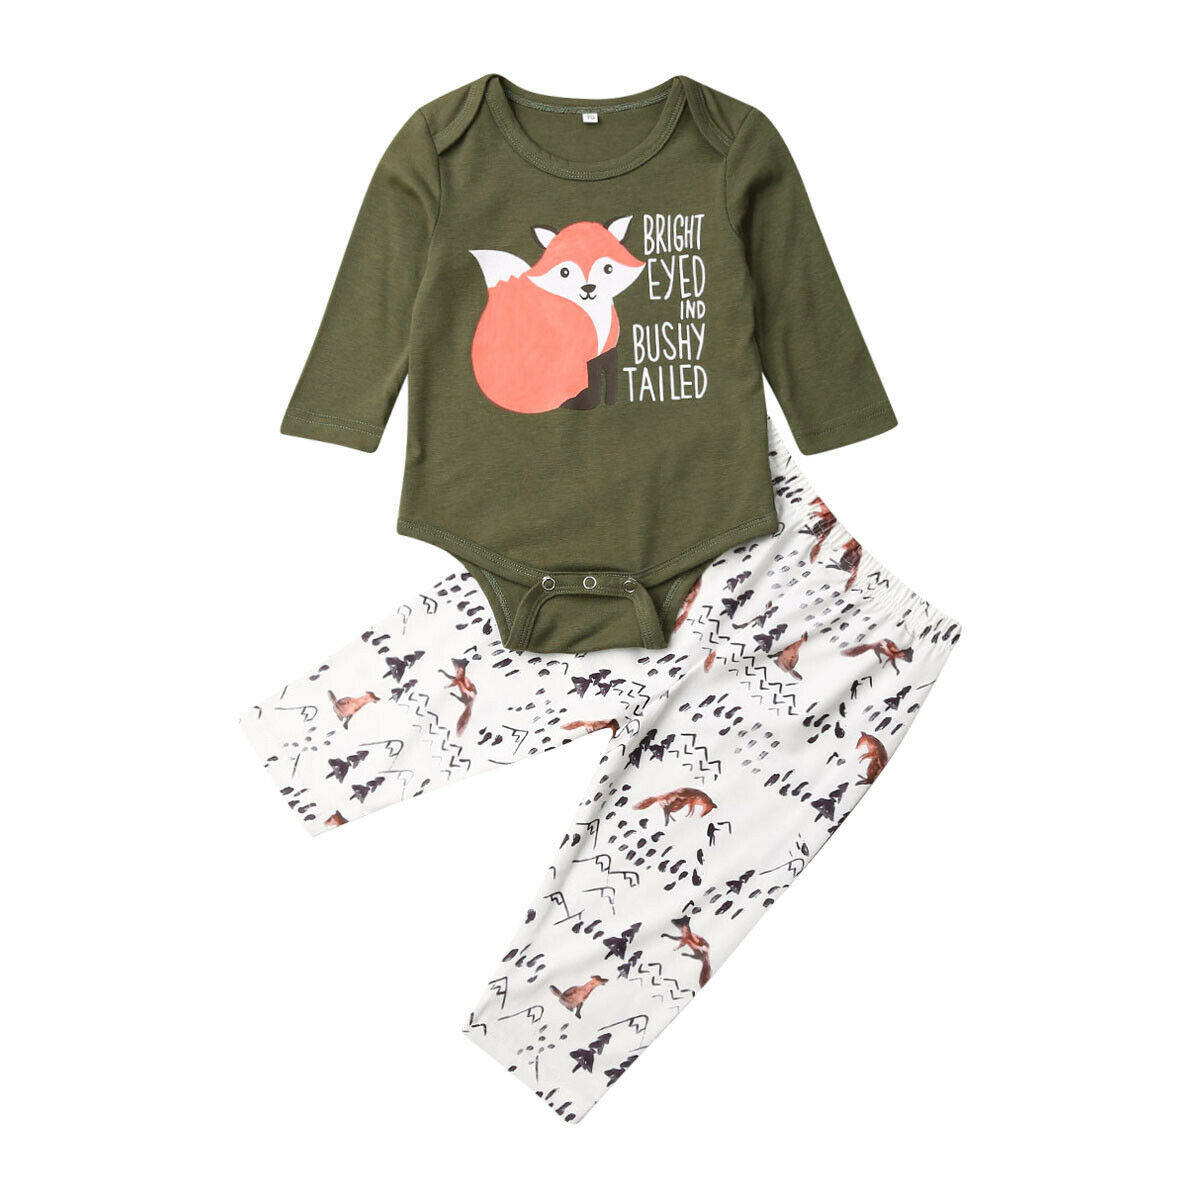 Autumn Newborn Toddler Baby Boy Girl Fox Cotton Tops Shirts Pants Clothes Outfit